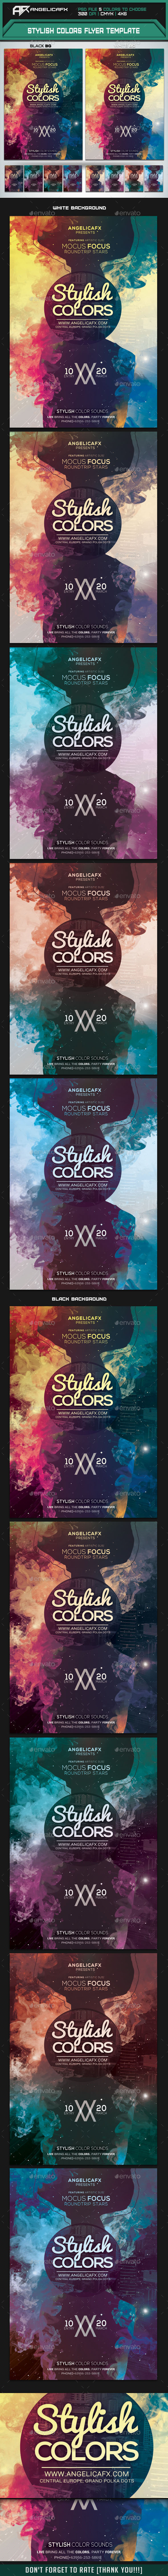 Stylish Colors Flyer Template - Print Templates